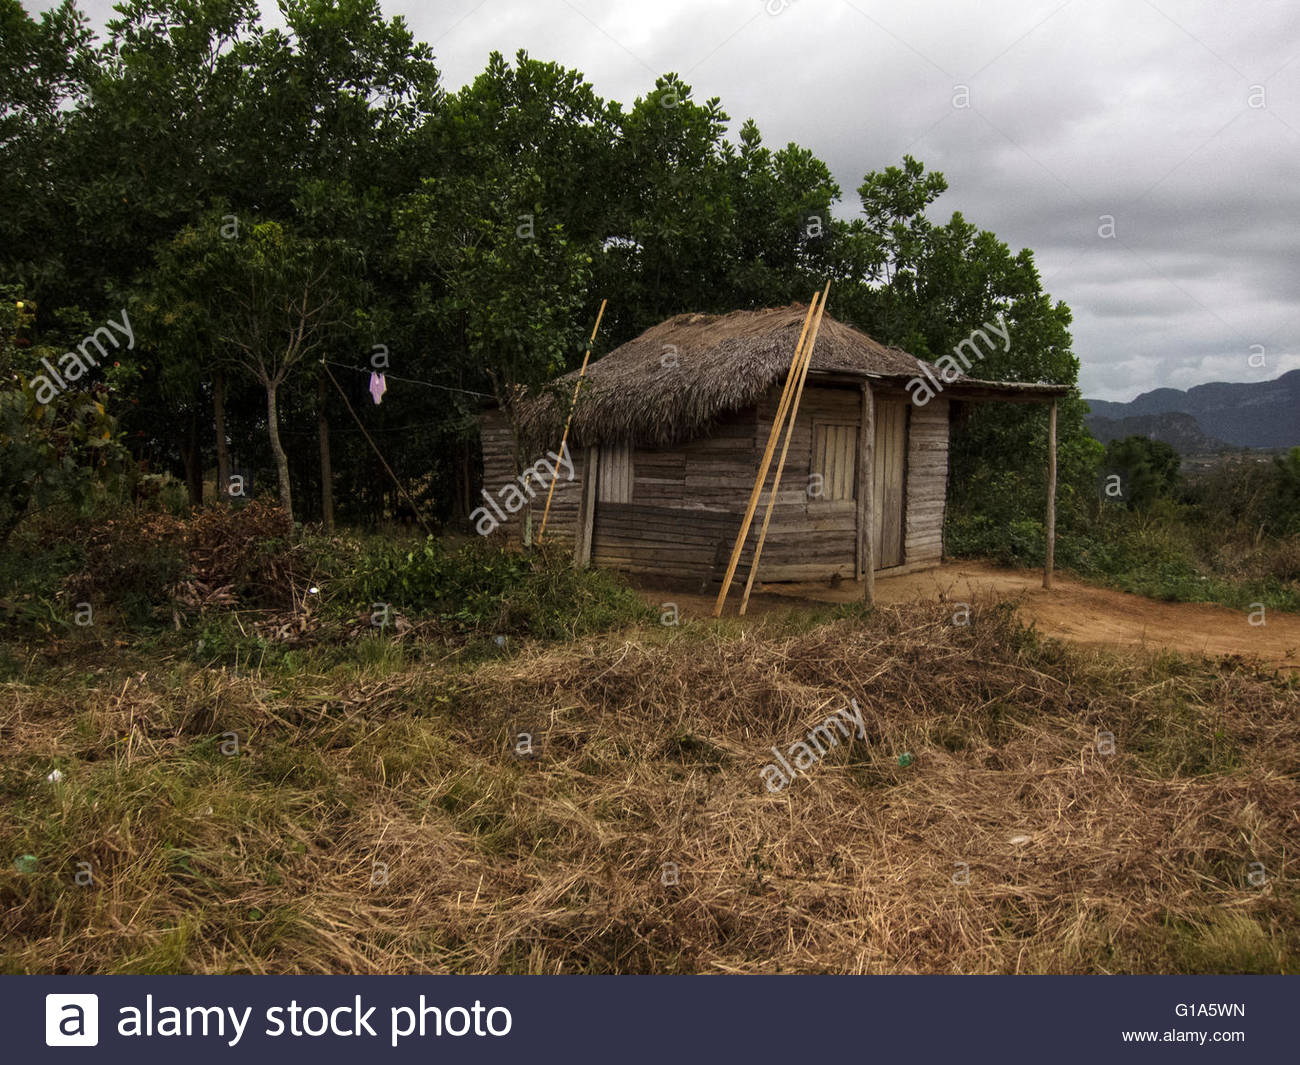 Shack, traditional thatched-roof Cuban 'bohio' (hut) in Vinales Valley, Cuba, a UNESCO World Heritage site, - Stock Image